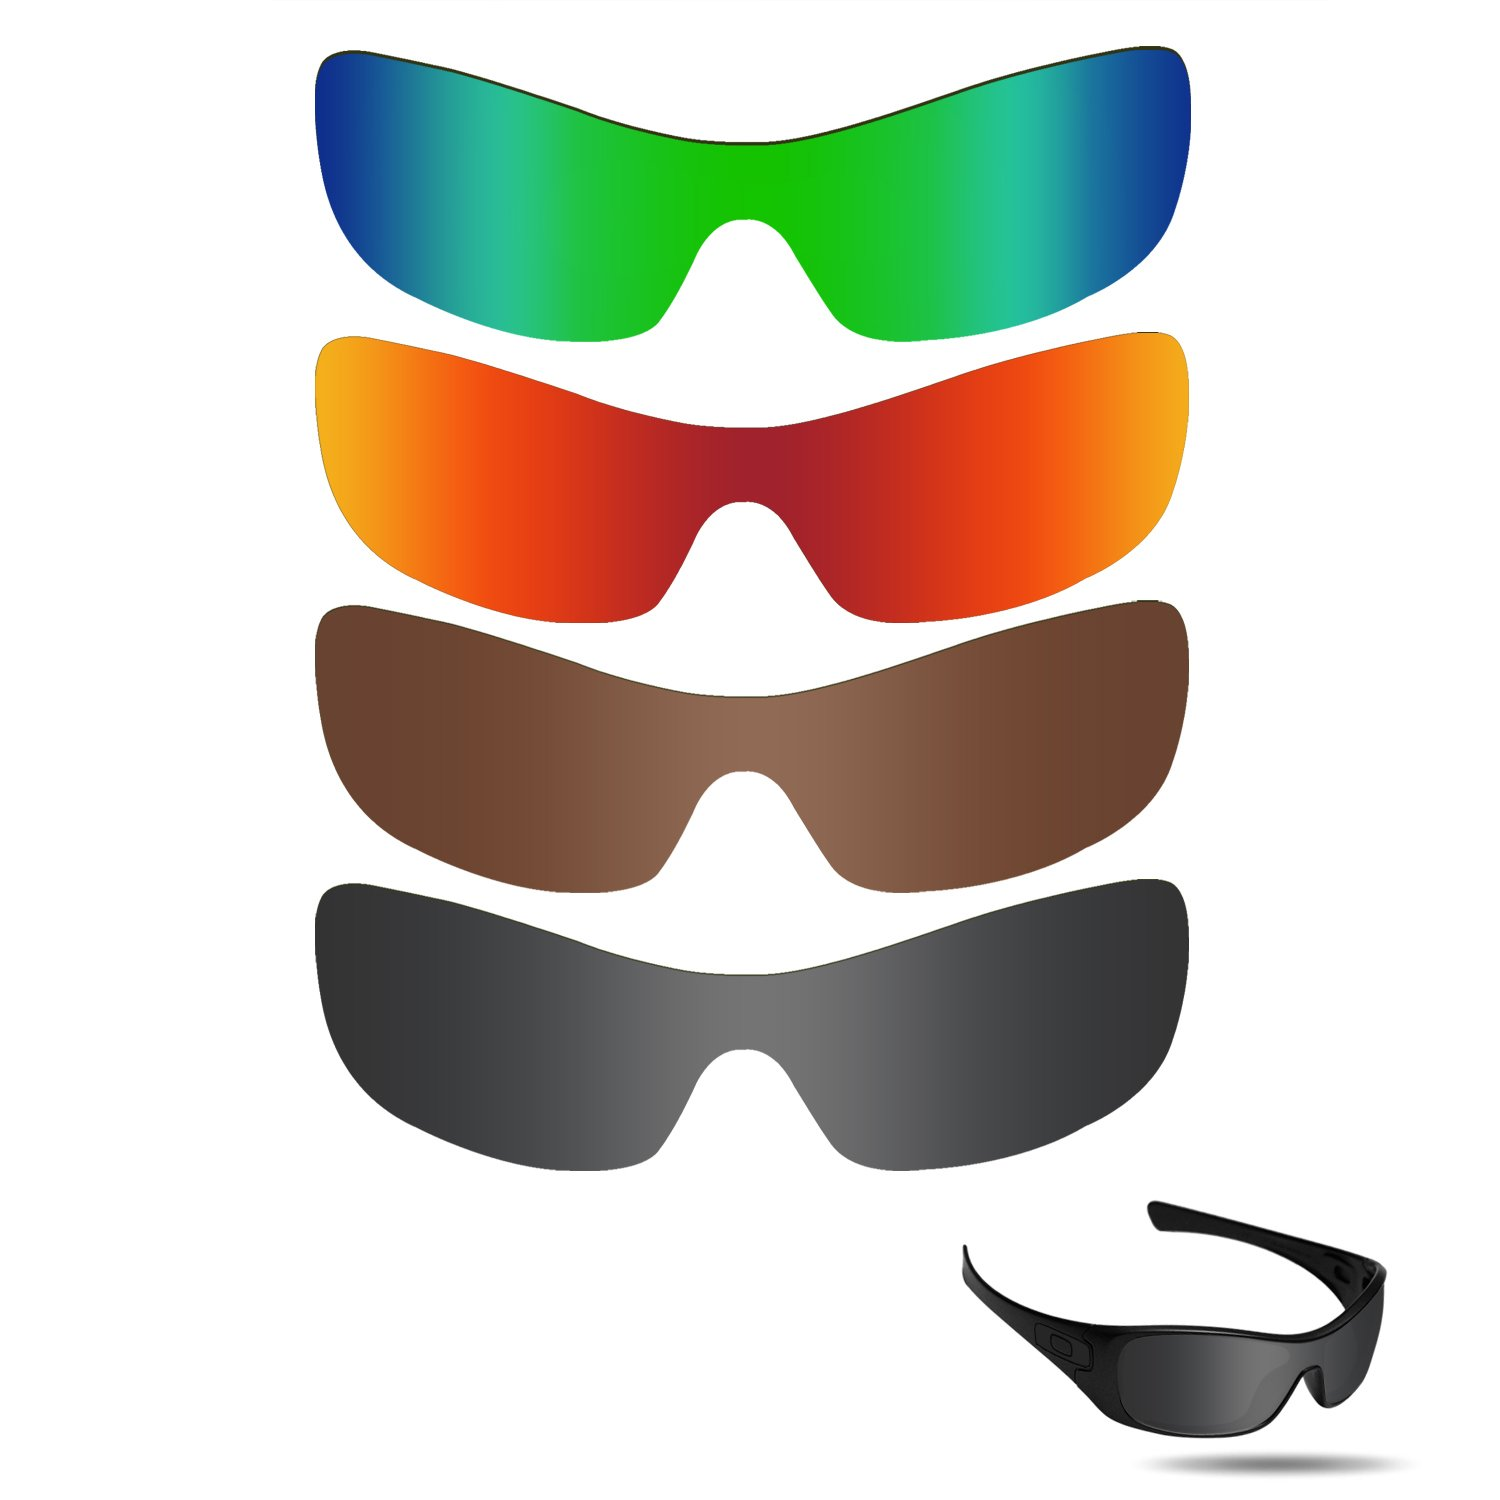 Fiskr Anti-saltwater Replacement Lenses for Oakley Antix Sunglasses 4 Pairs Pack by Fiskr